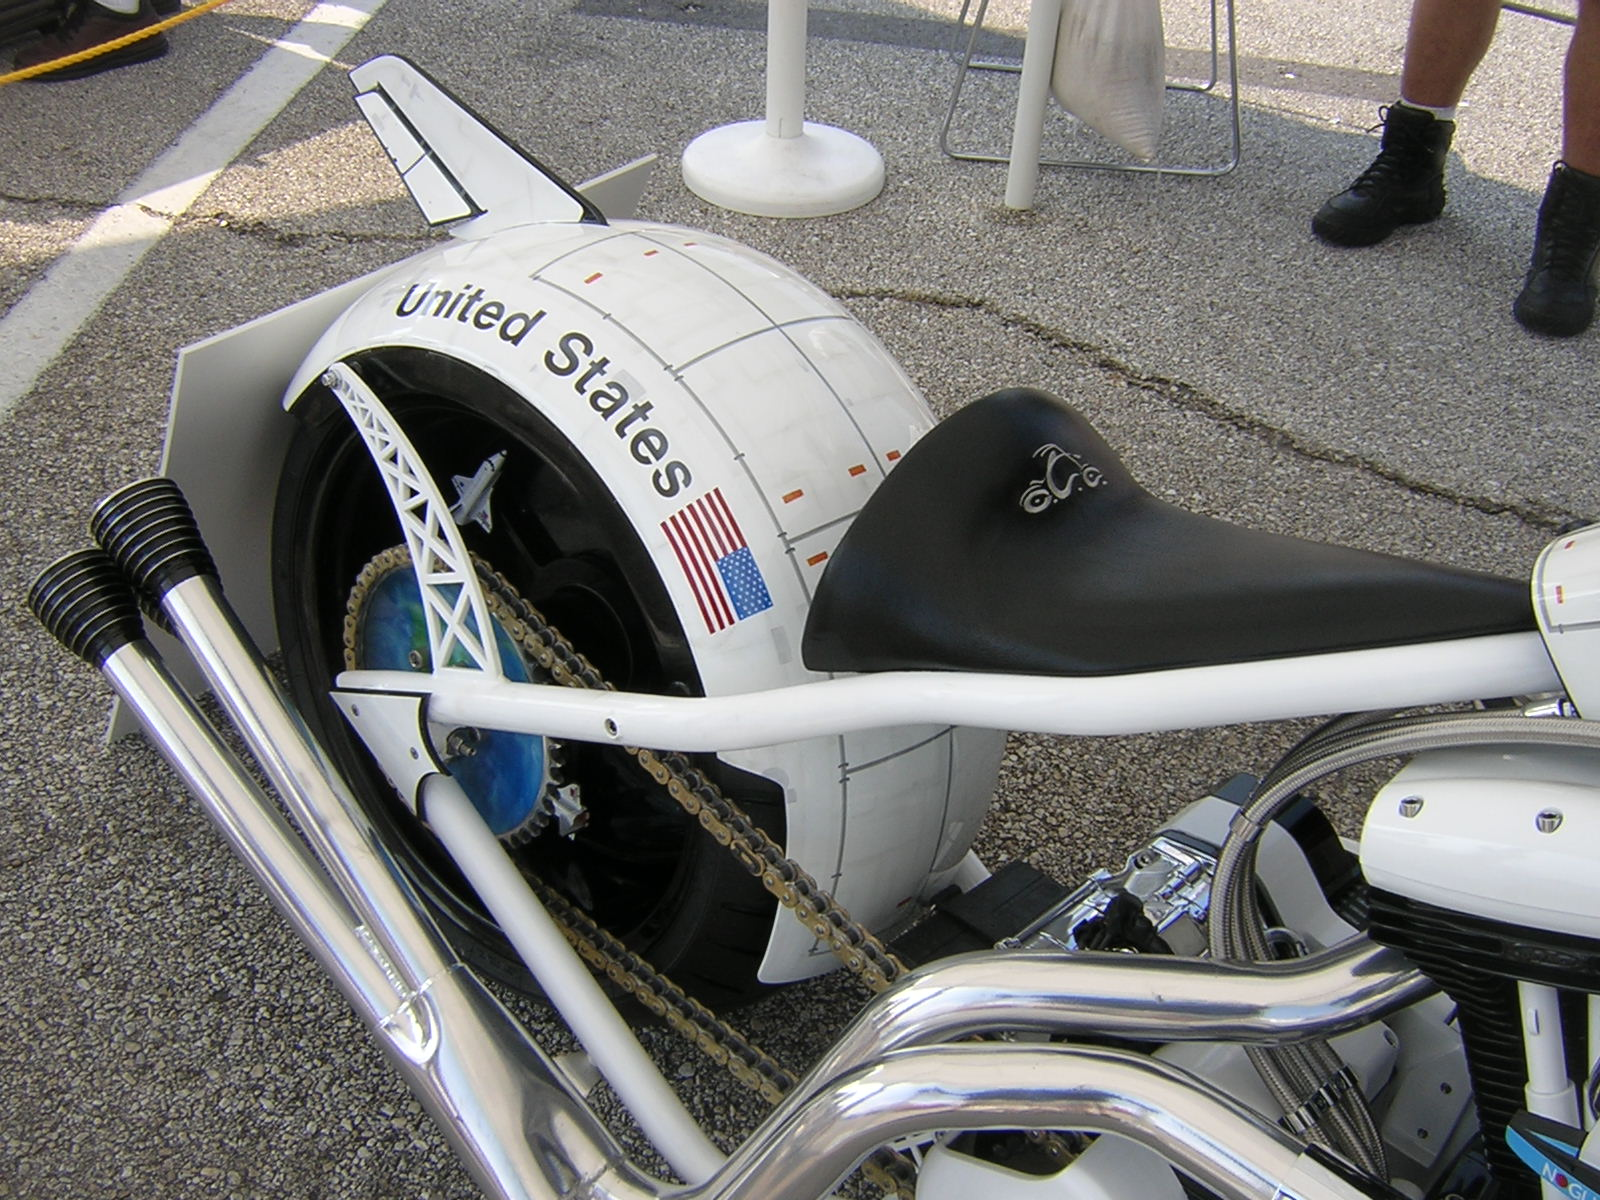 space shuttle bike occ - photo #12